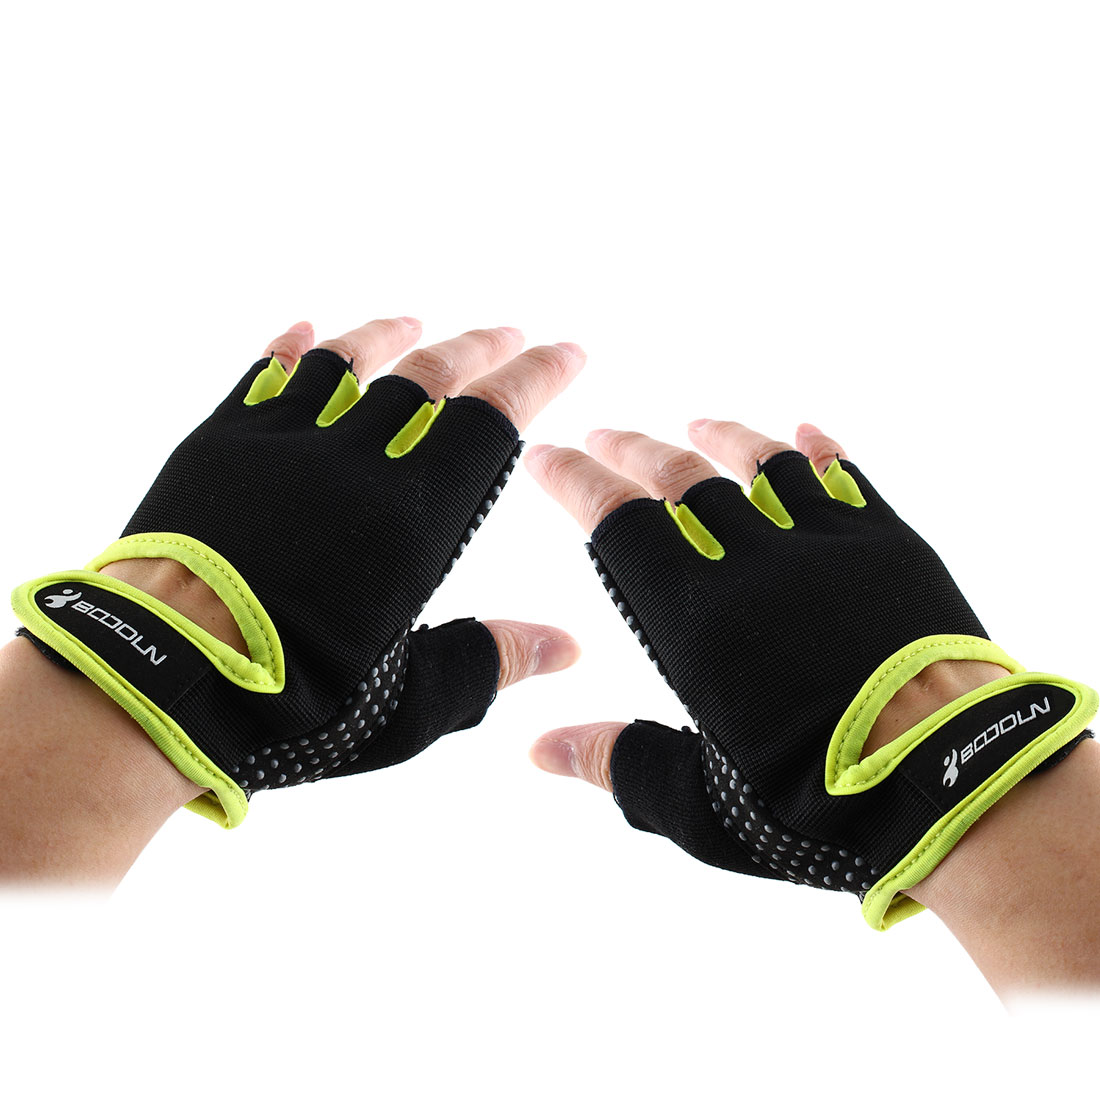 BOODUN Authorized Adult Unisex Spandex Adjustable Sports Training Workout Mittens Fitness Gloves Fluorescent Yellow M Pair